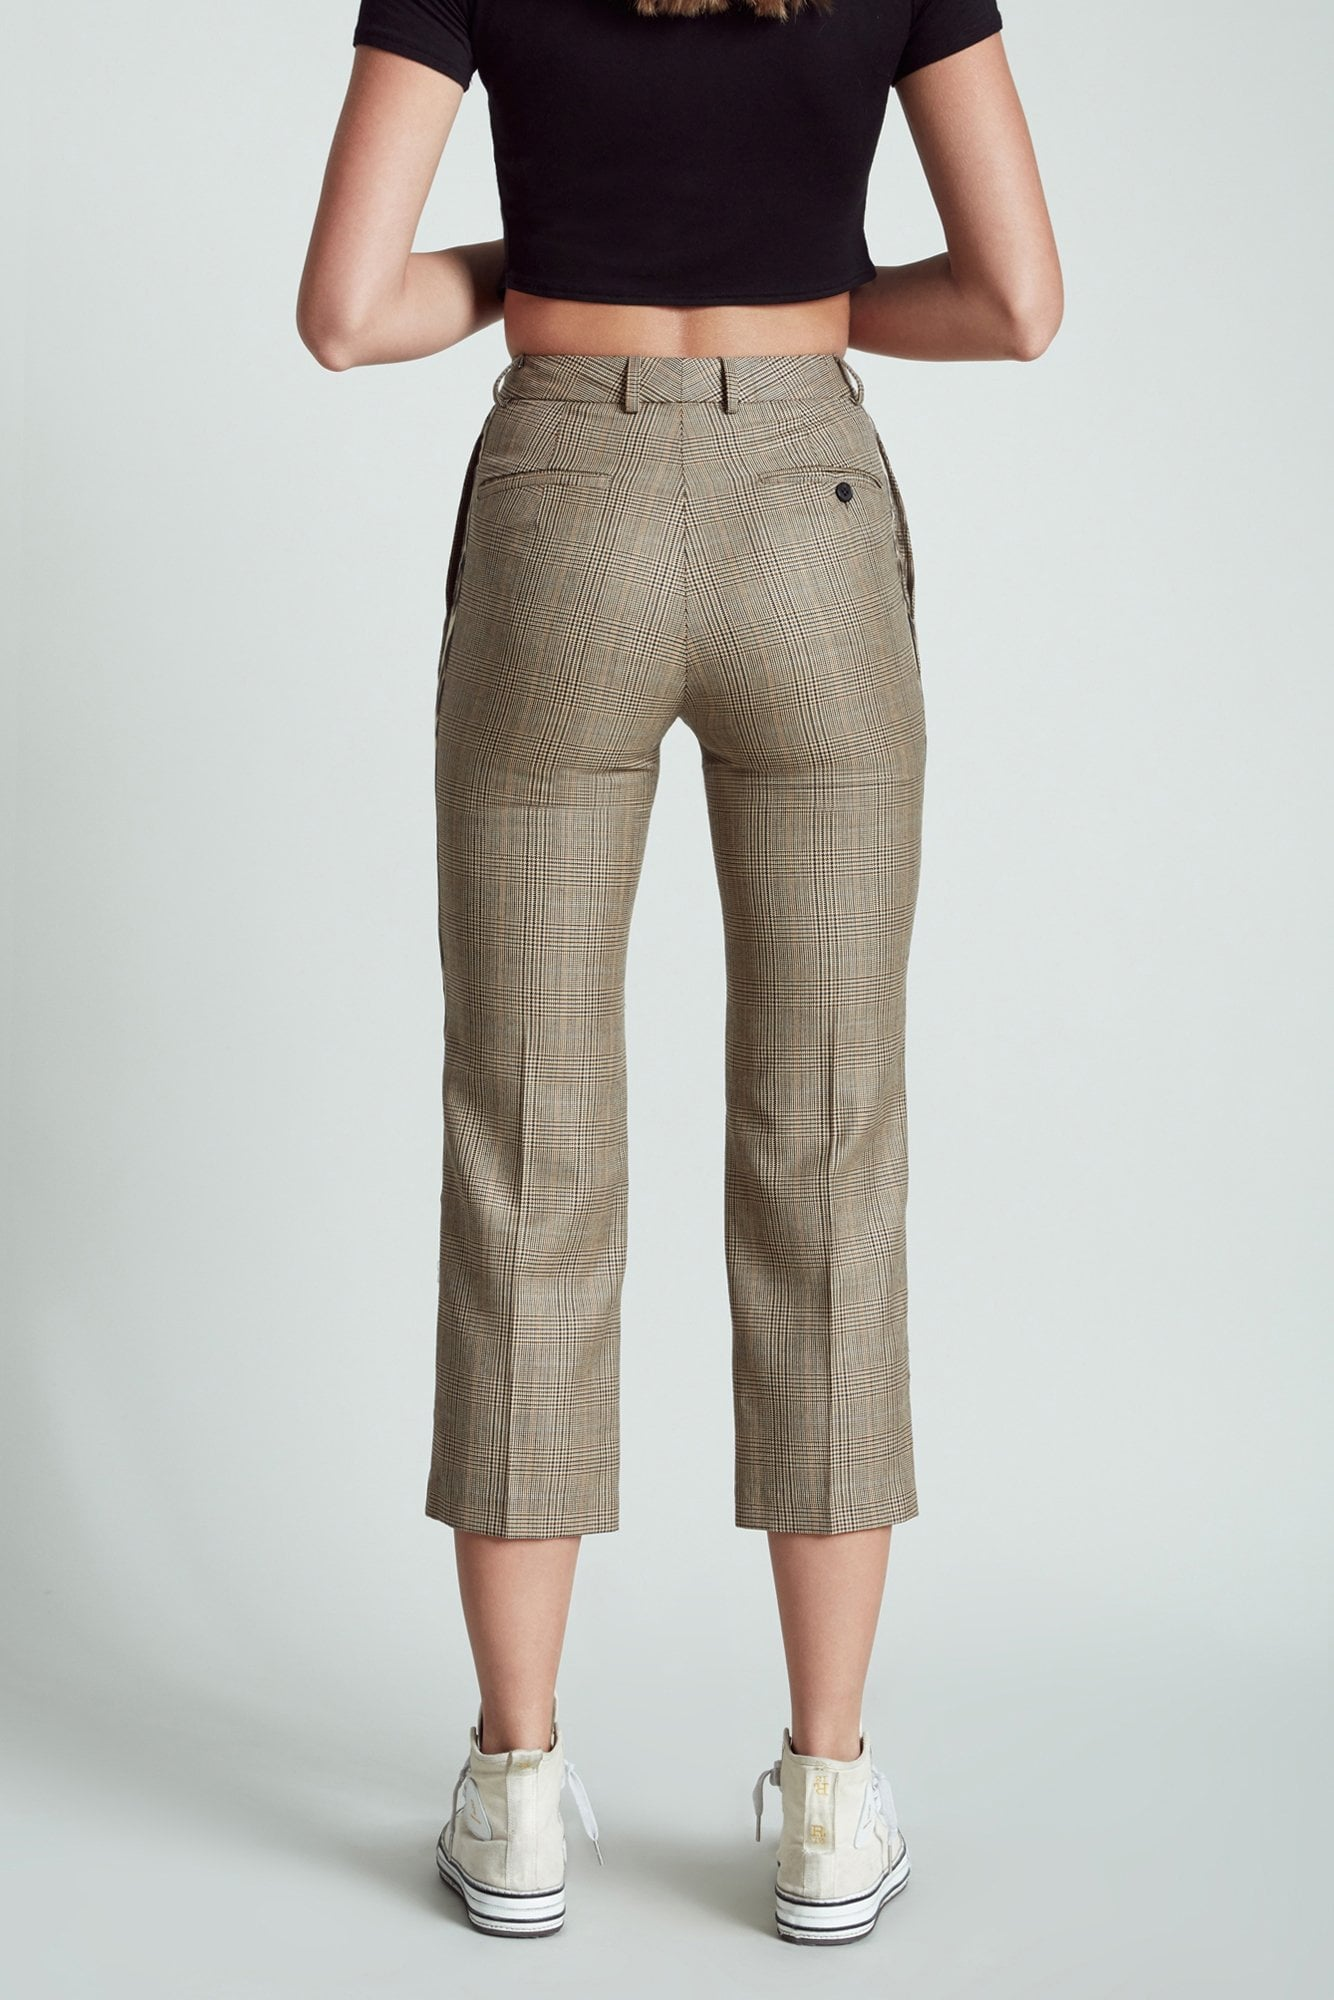 Tuxedo Trouser- Brown Plaid with Leopard